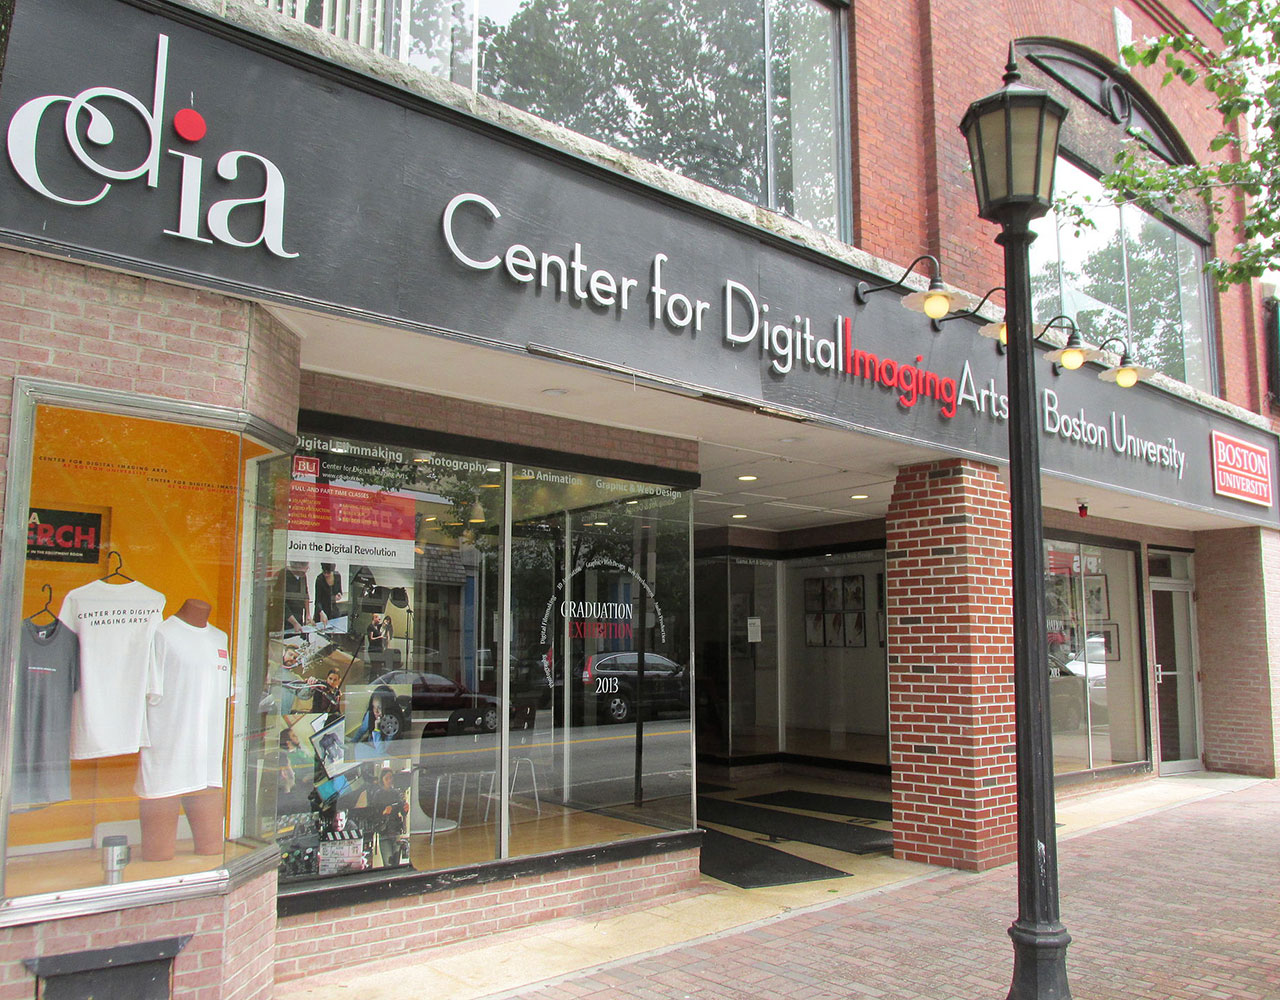 Street view of Center for Digital Imaging Arts at Boston University